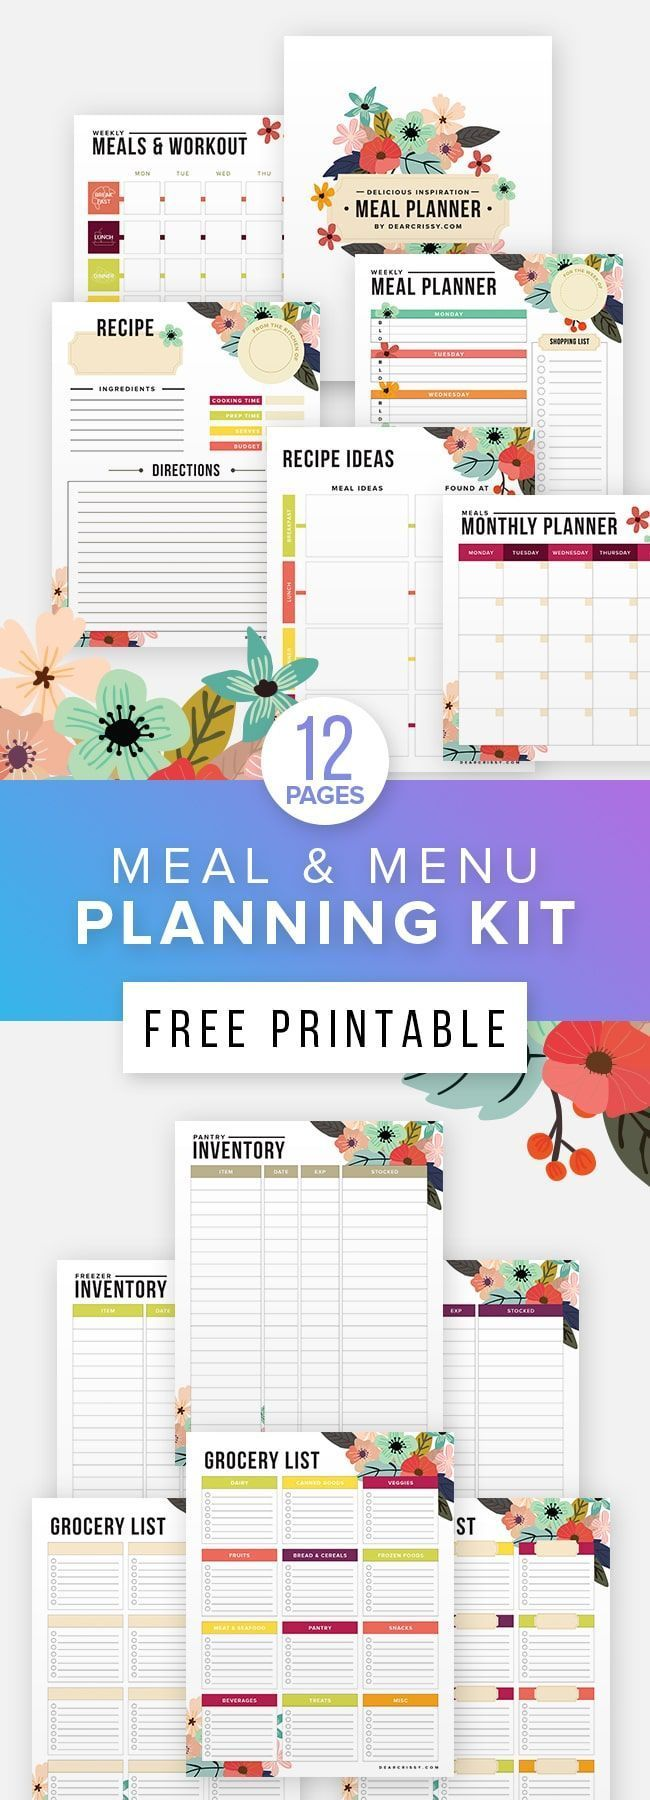 Free Printable Meal Planner & Fitness Planner,  #fitness #Fitnessplanner #free #Meal #Planner #Print...